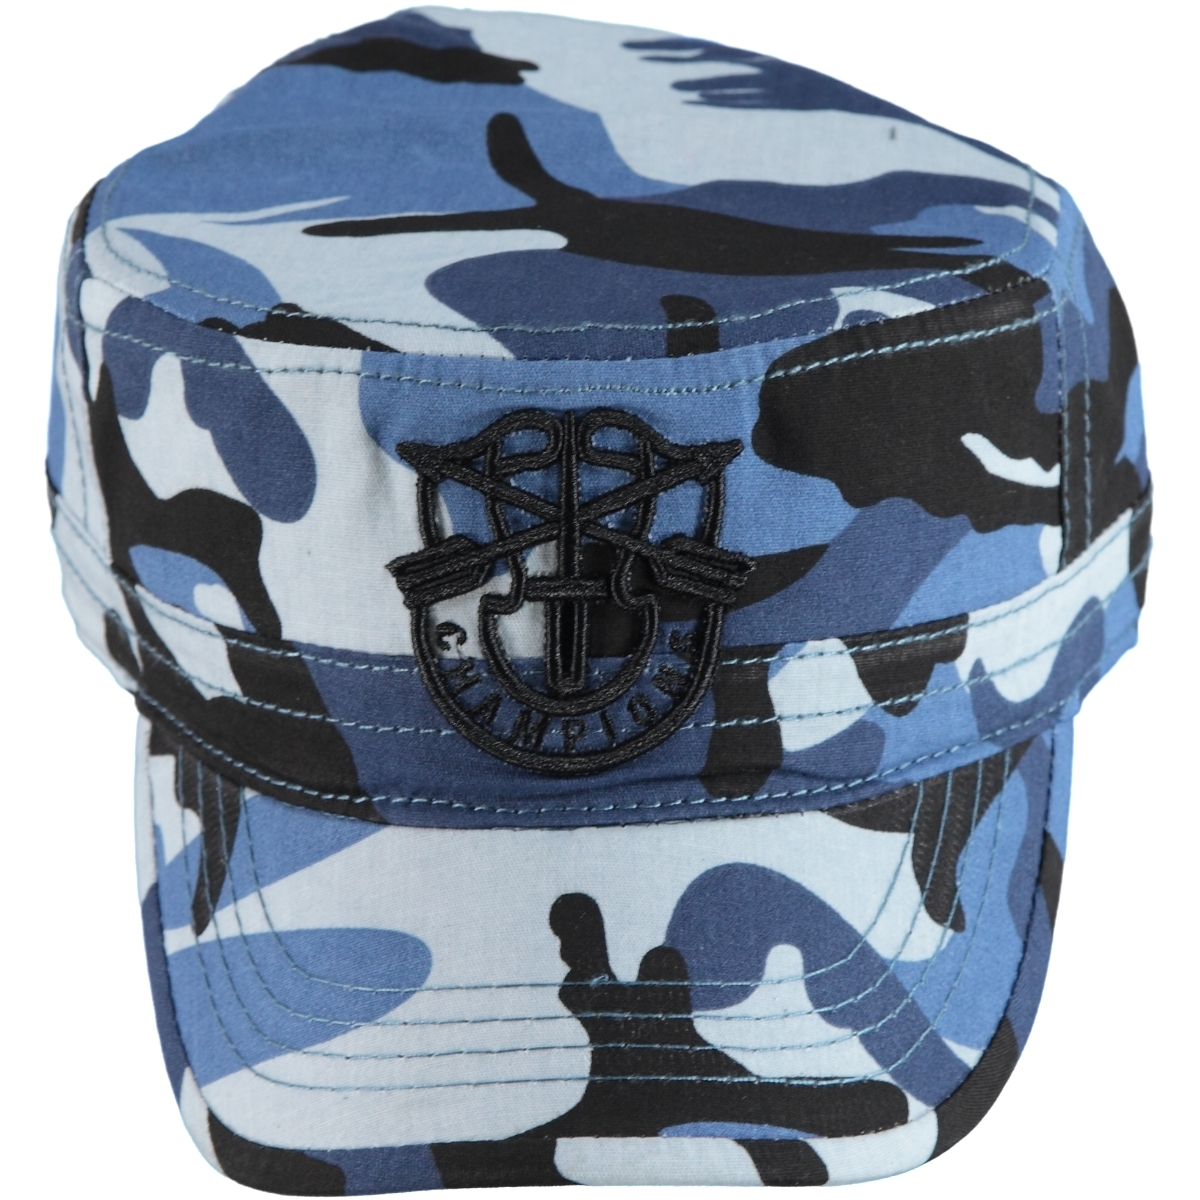 Kitti The Ages Of 9-15 Hat Blue Boy Cap